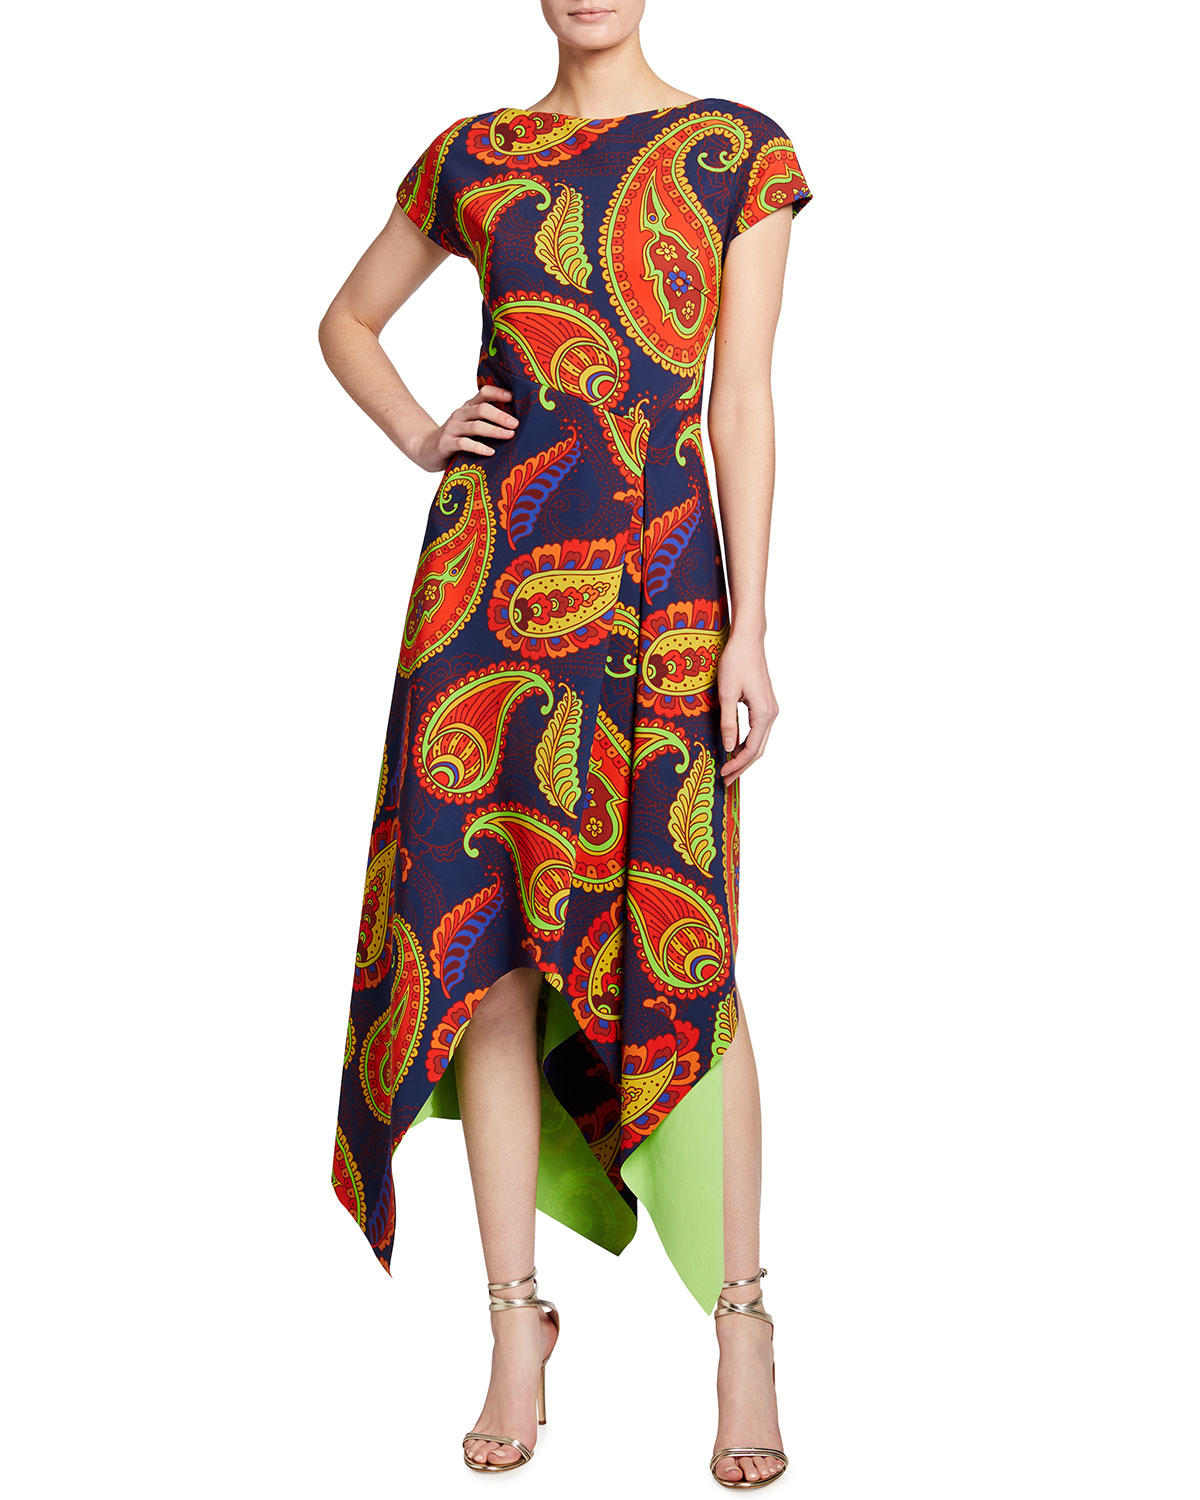 Chiara Boni La Petite Robe Paisley Short Sleeve Asymmetrical Midi Dress